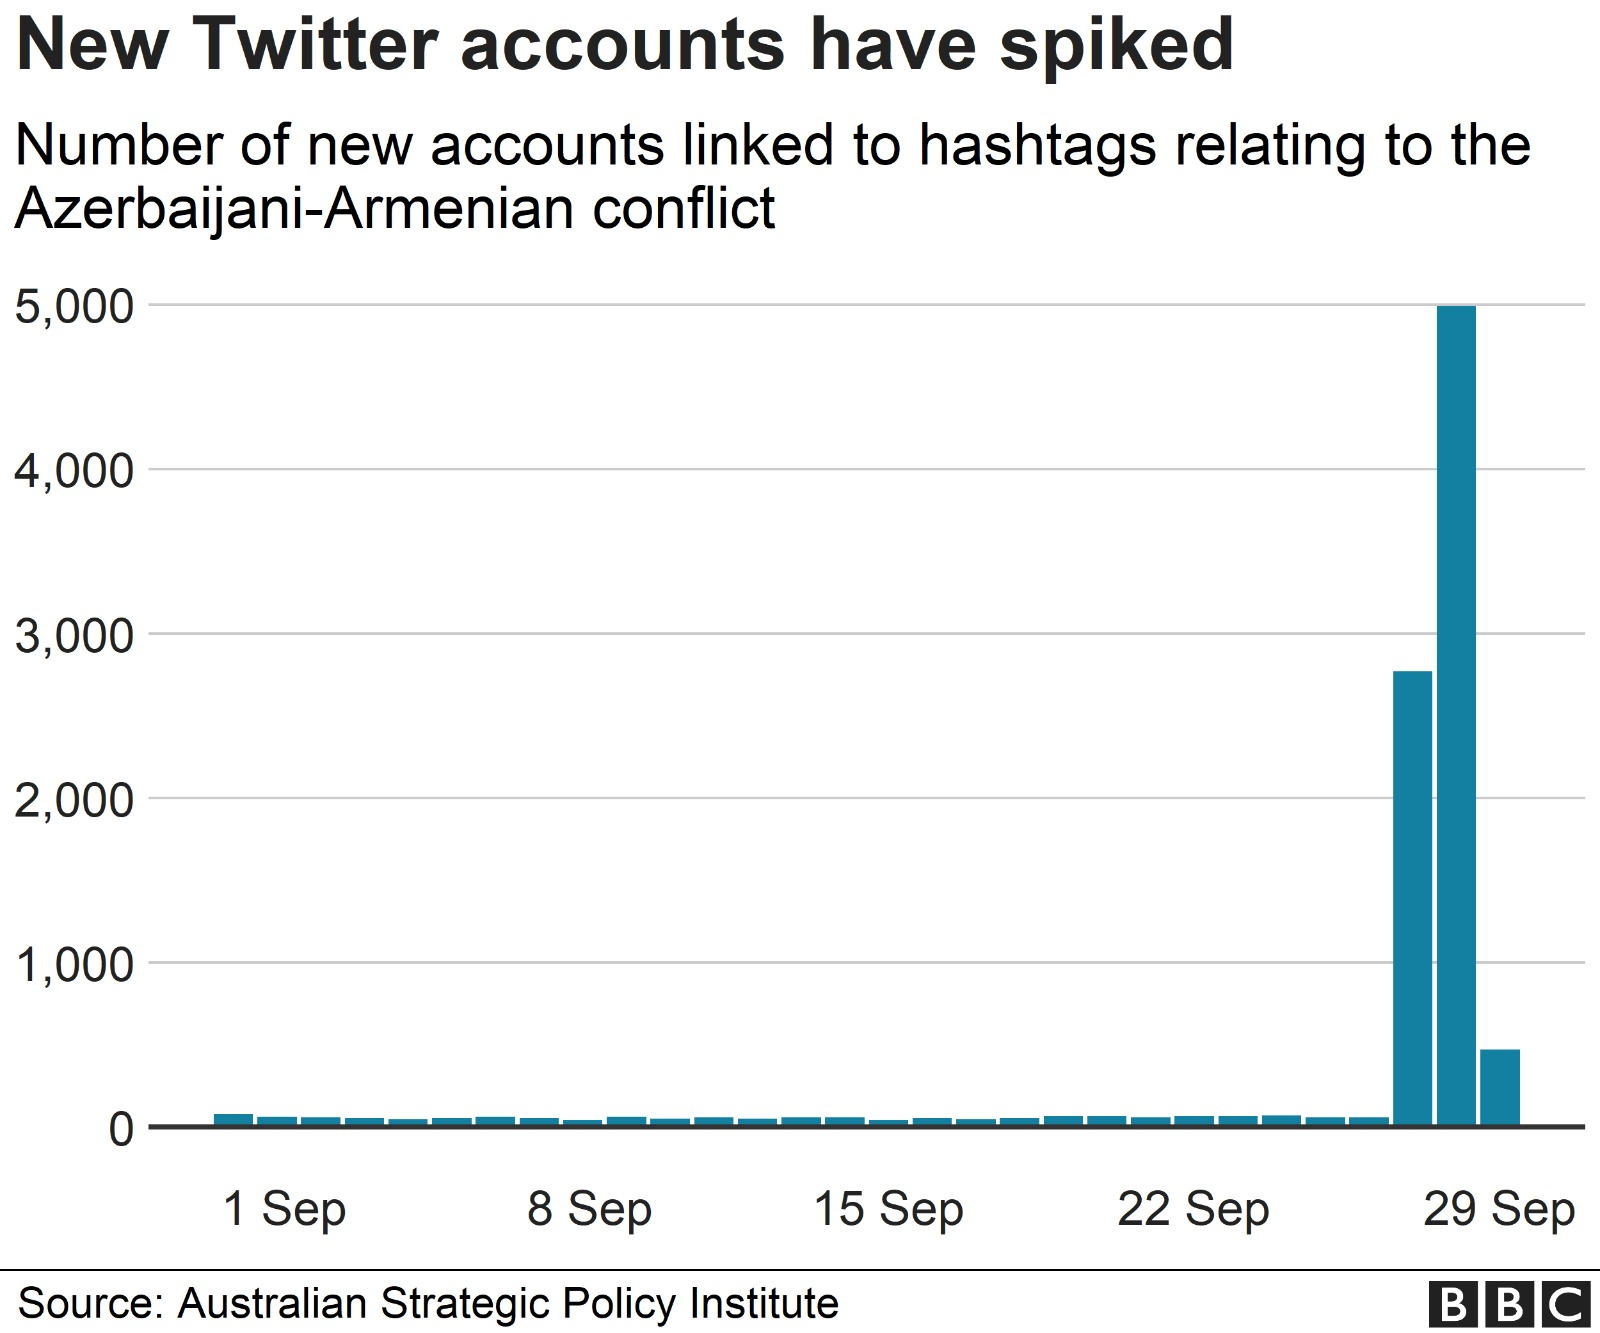 Graph of new Twitter accounts